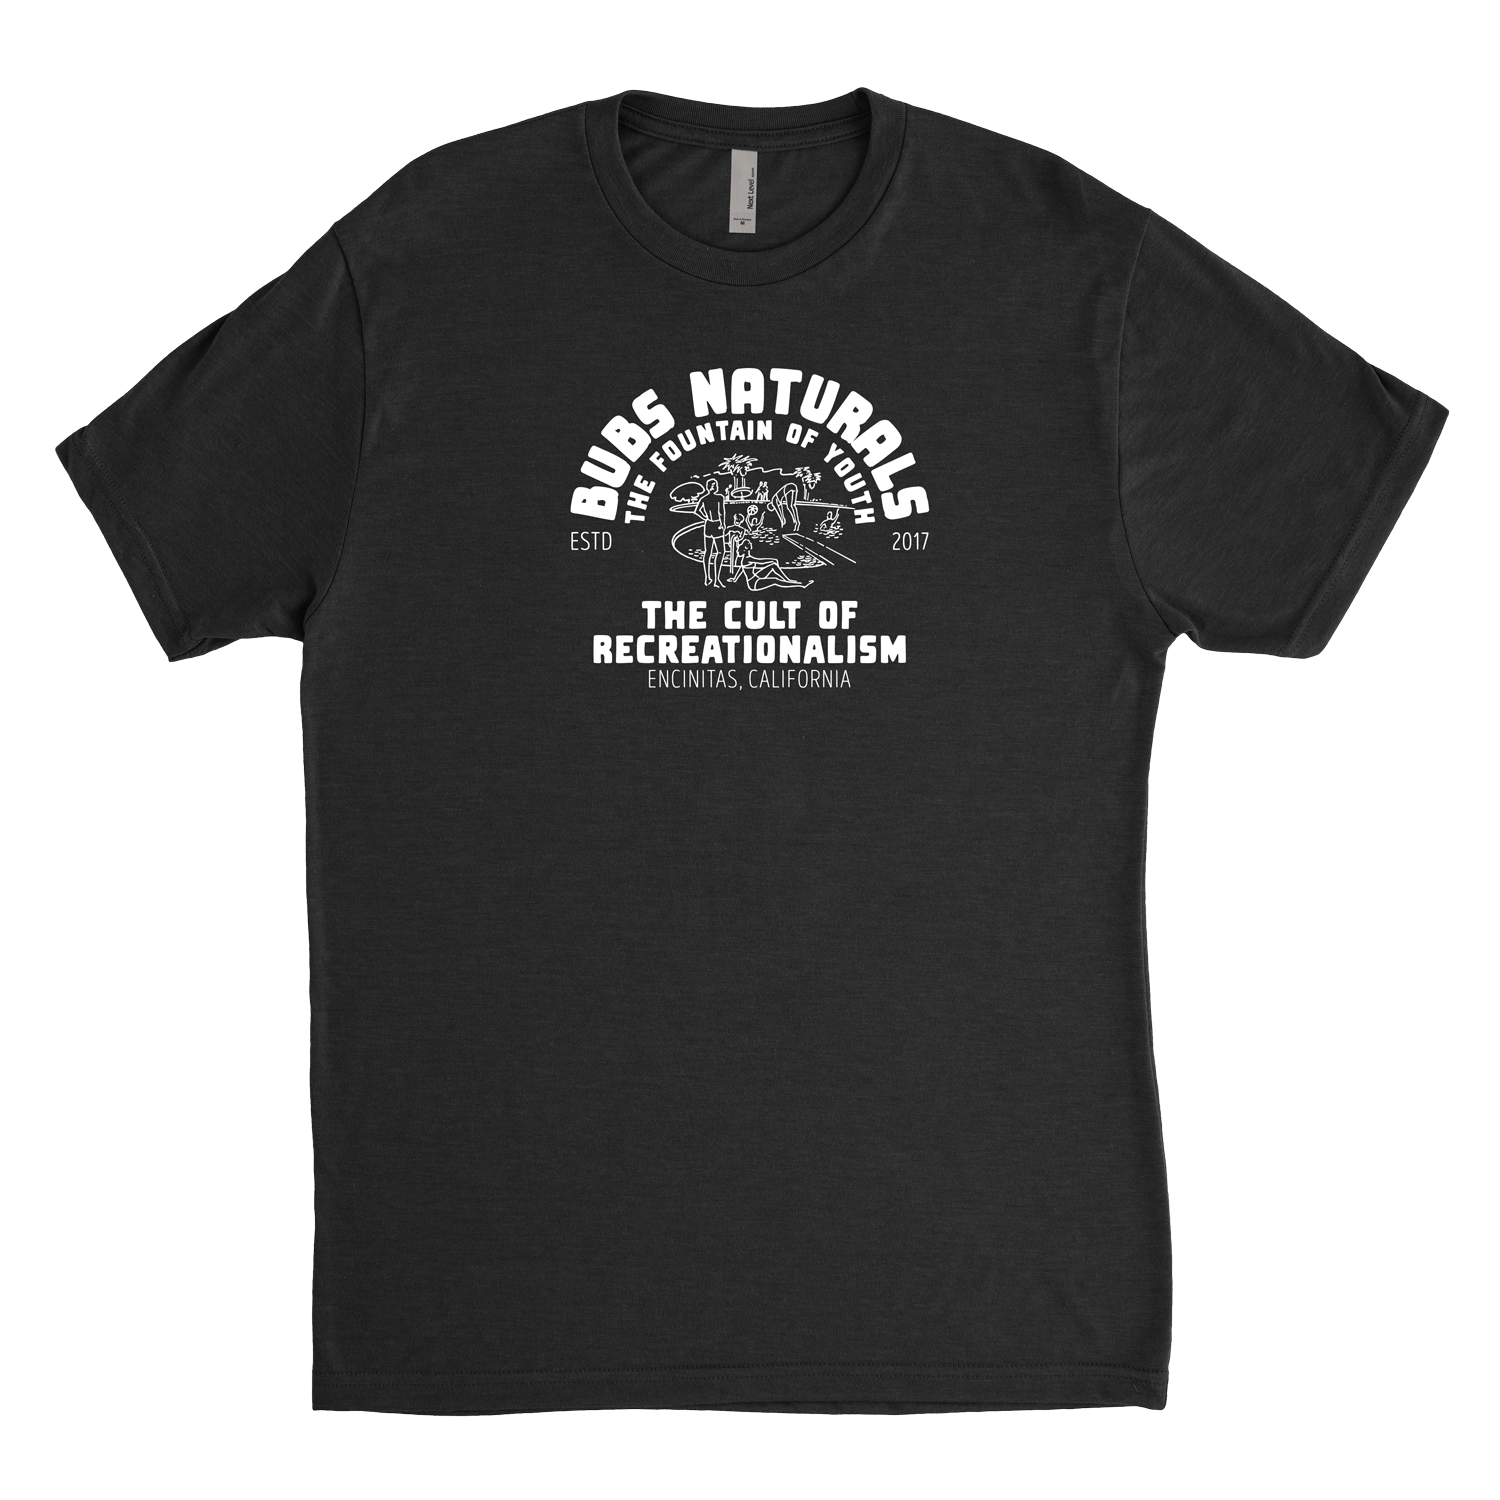 black BUBS Naturals Cult of Recreationalism t-shirt